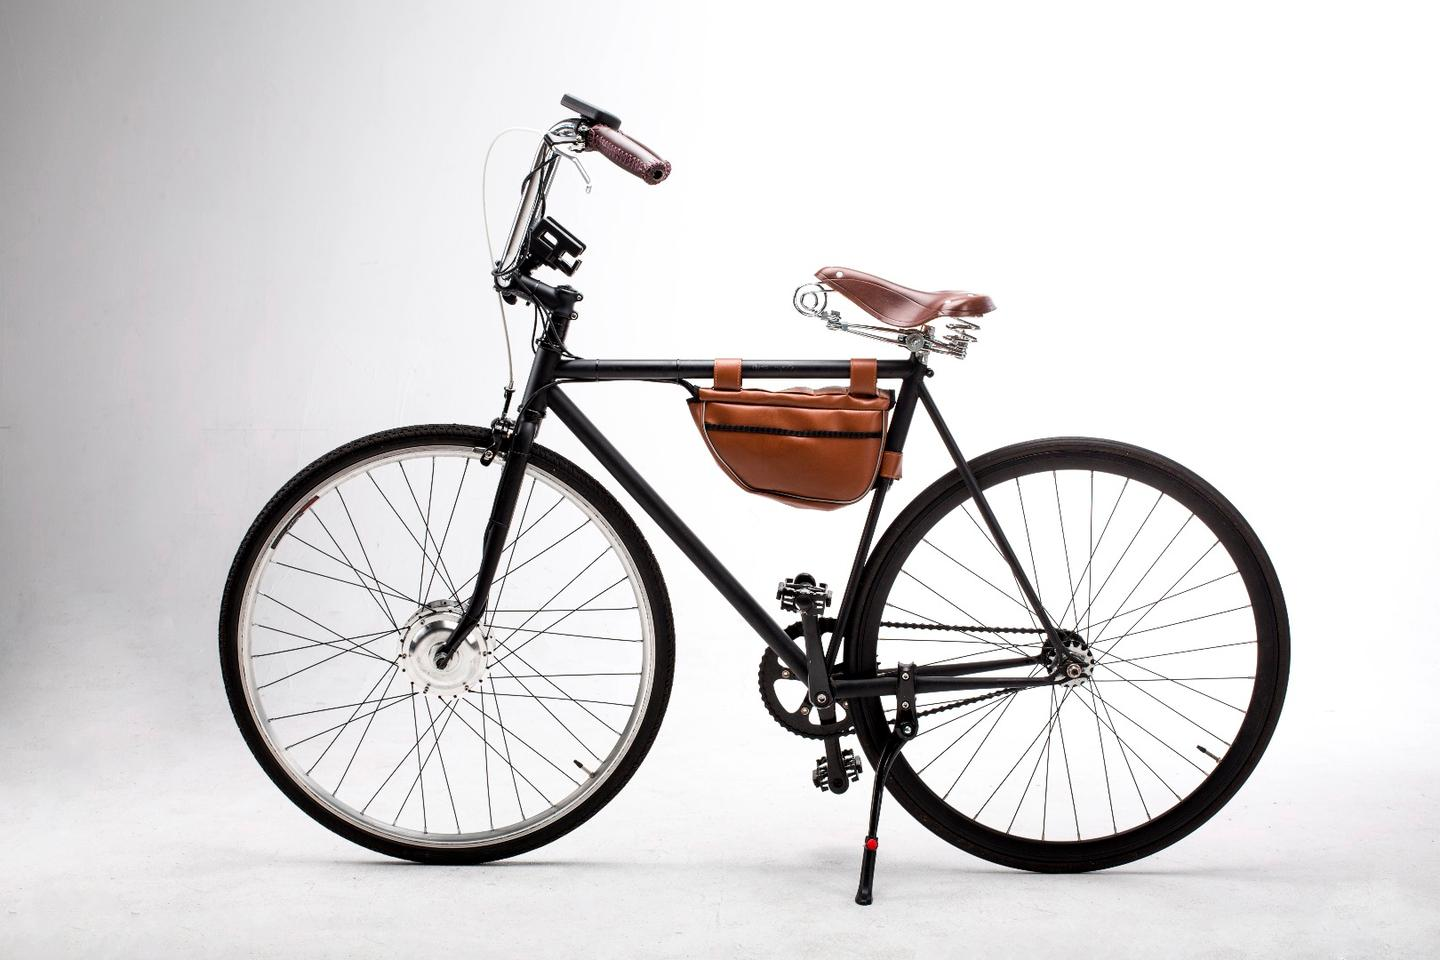 Coolpeds hopes to get the iBiketo market for under $1,000